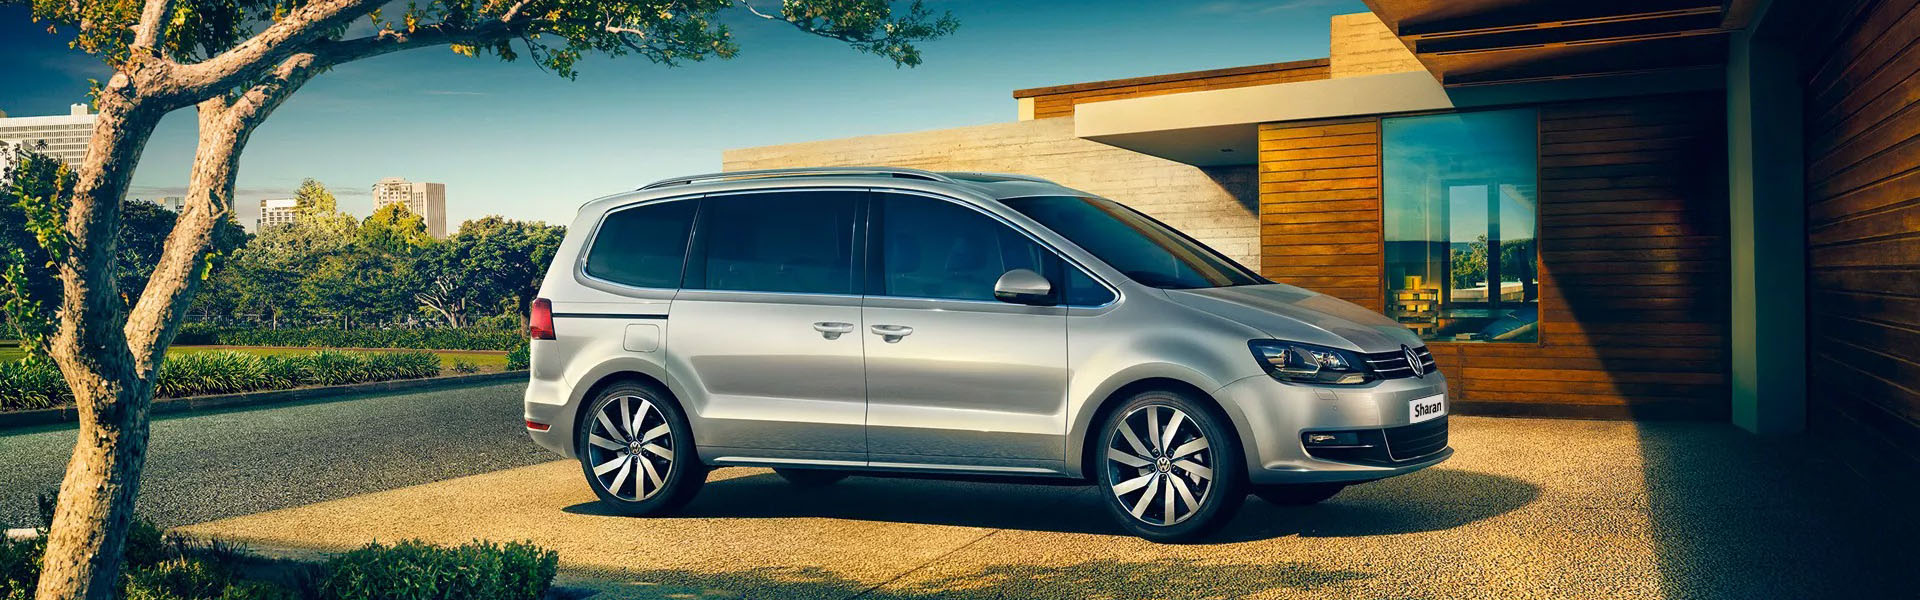 Volkswagen Sharan Land